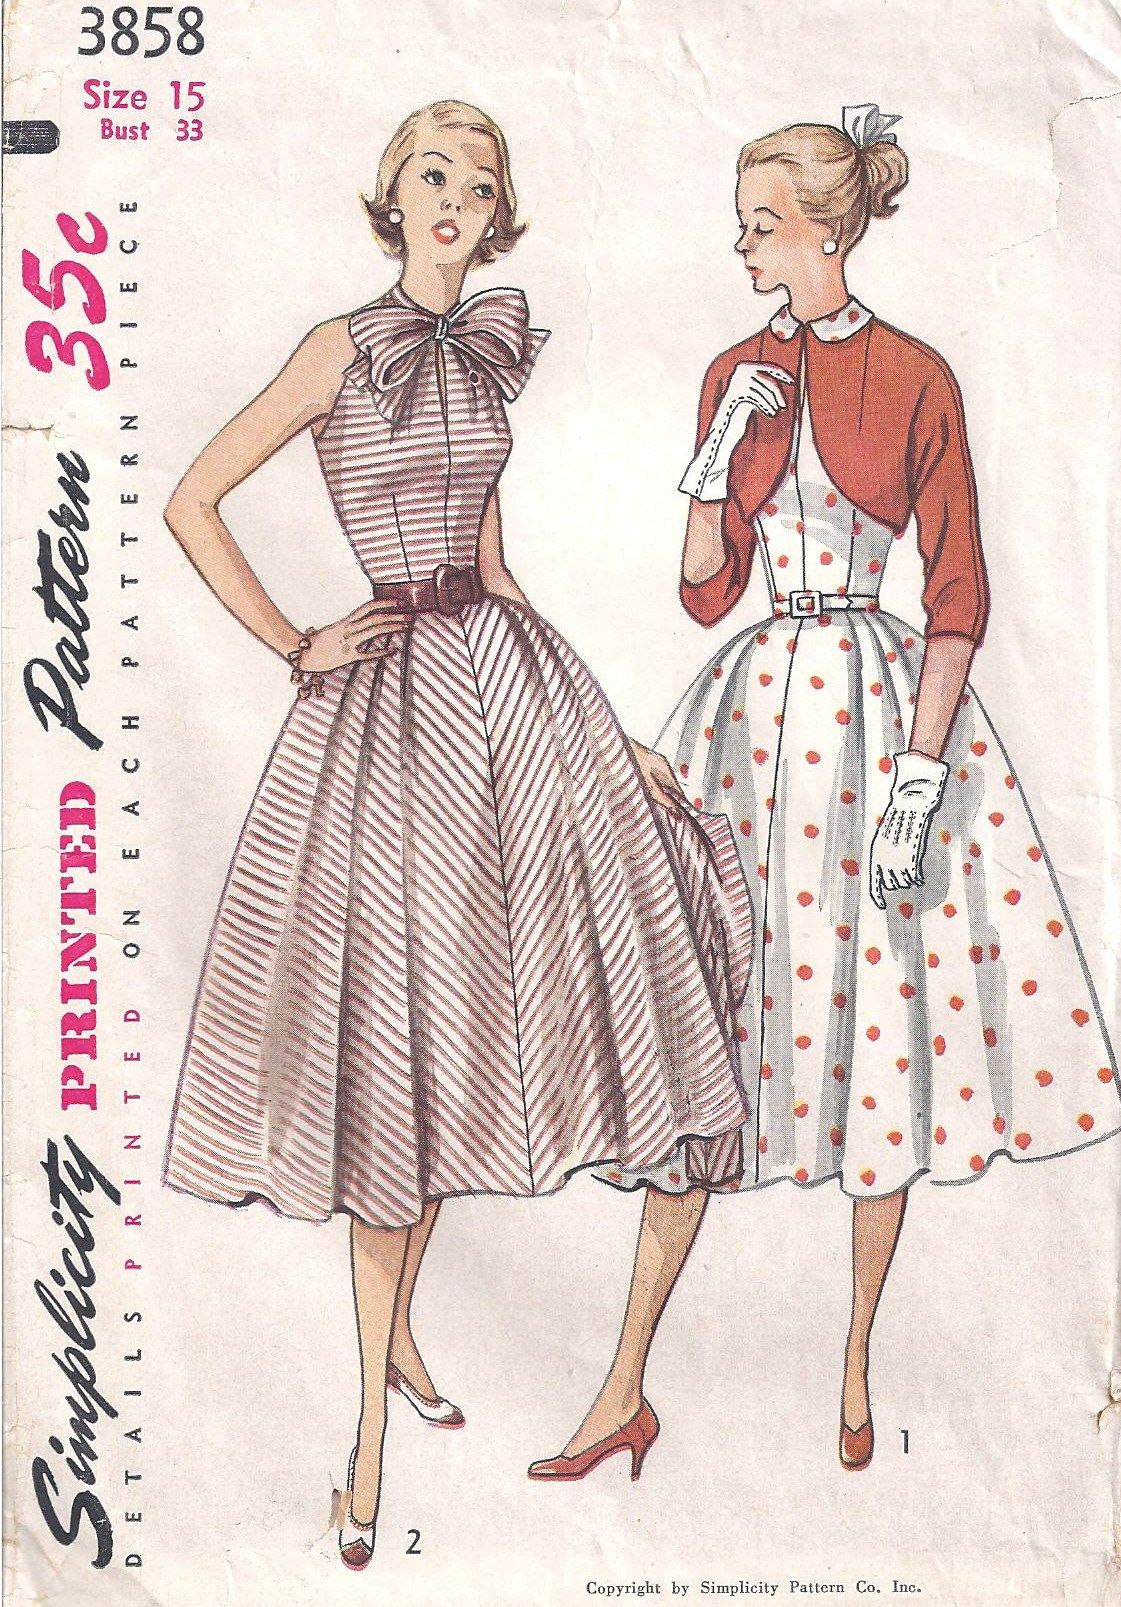 dress patterns for women | ... dress and jacket pattern 3858 size ...